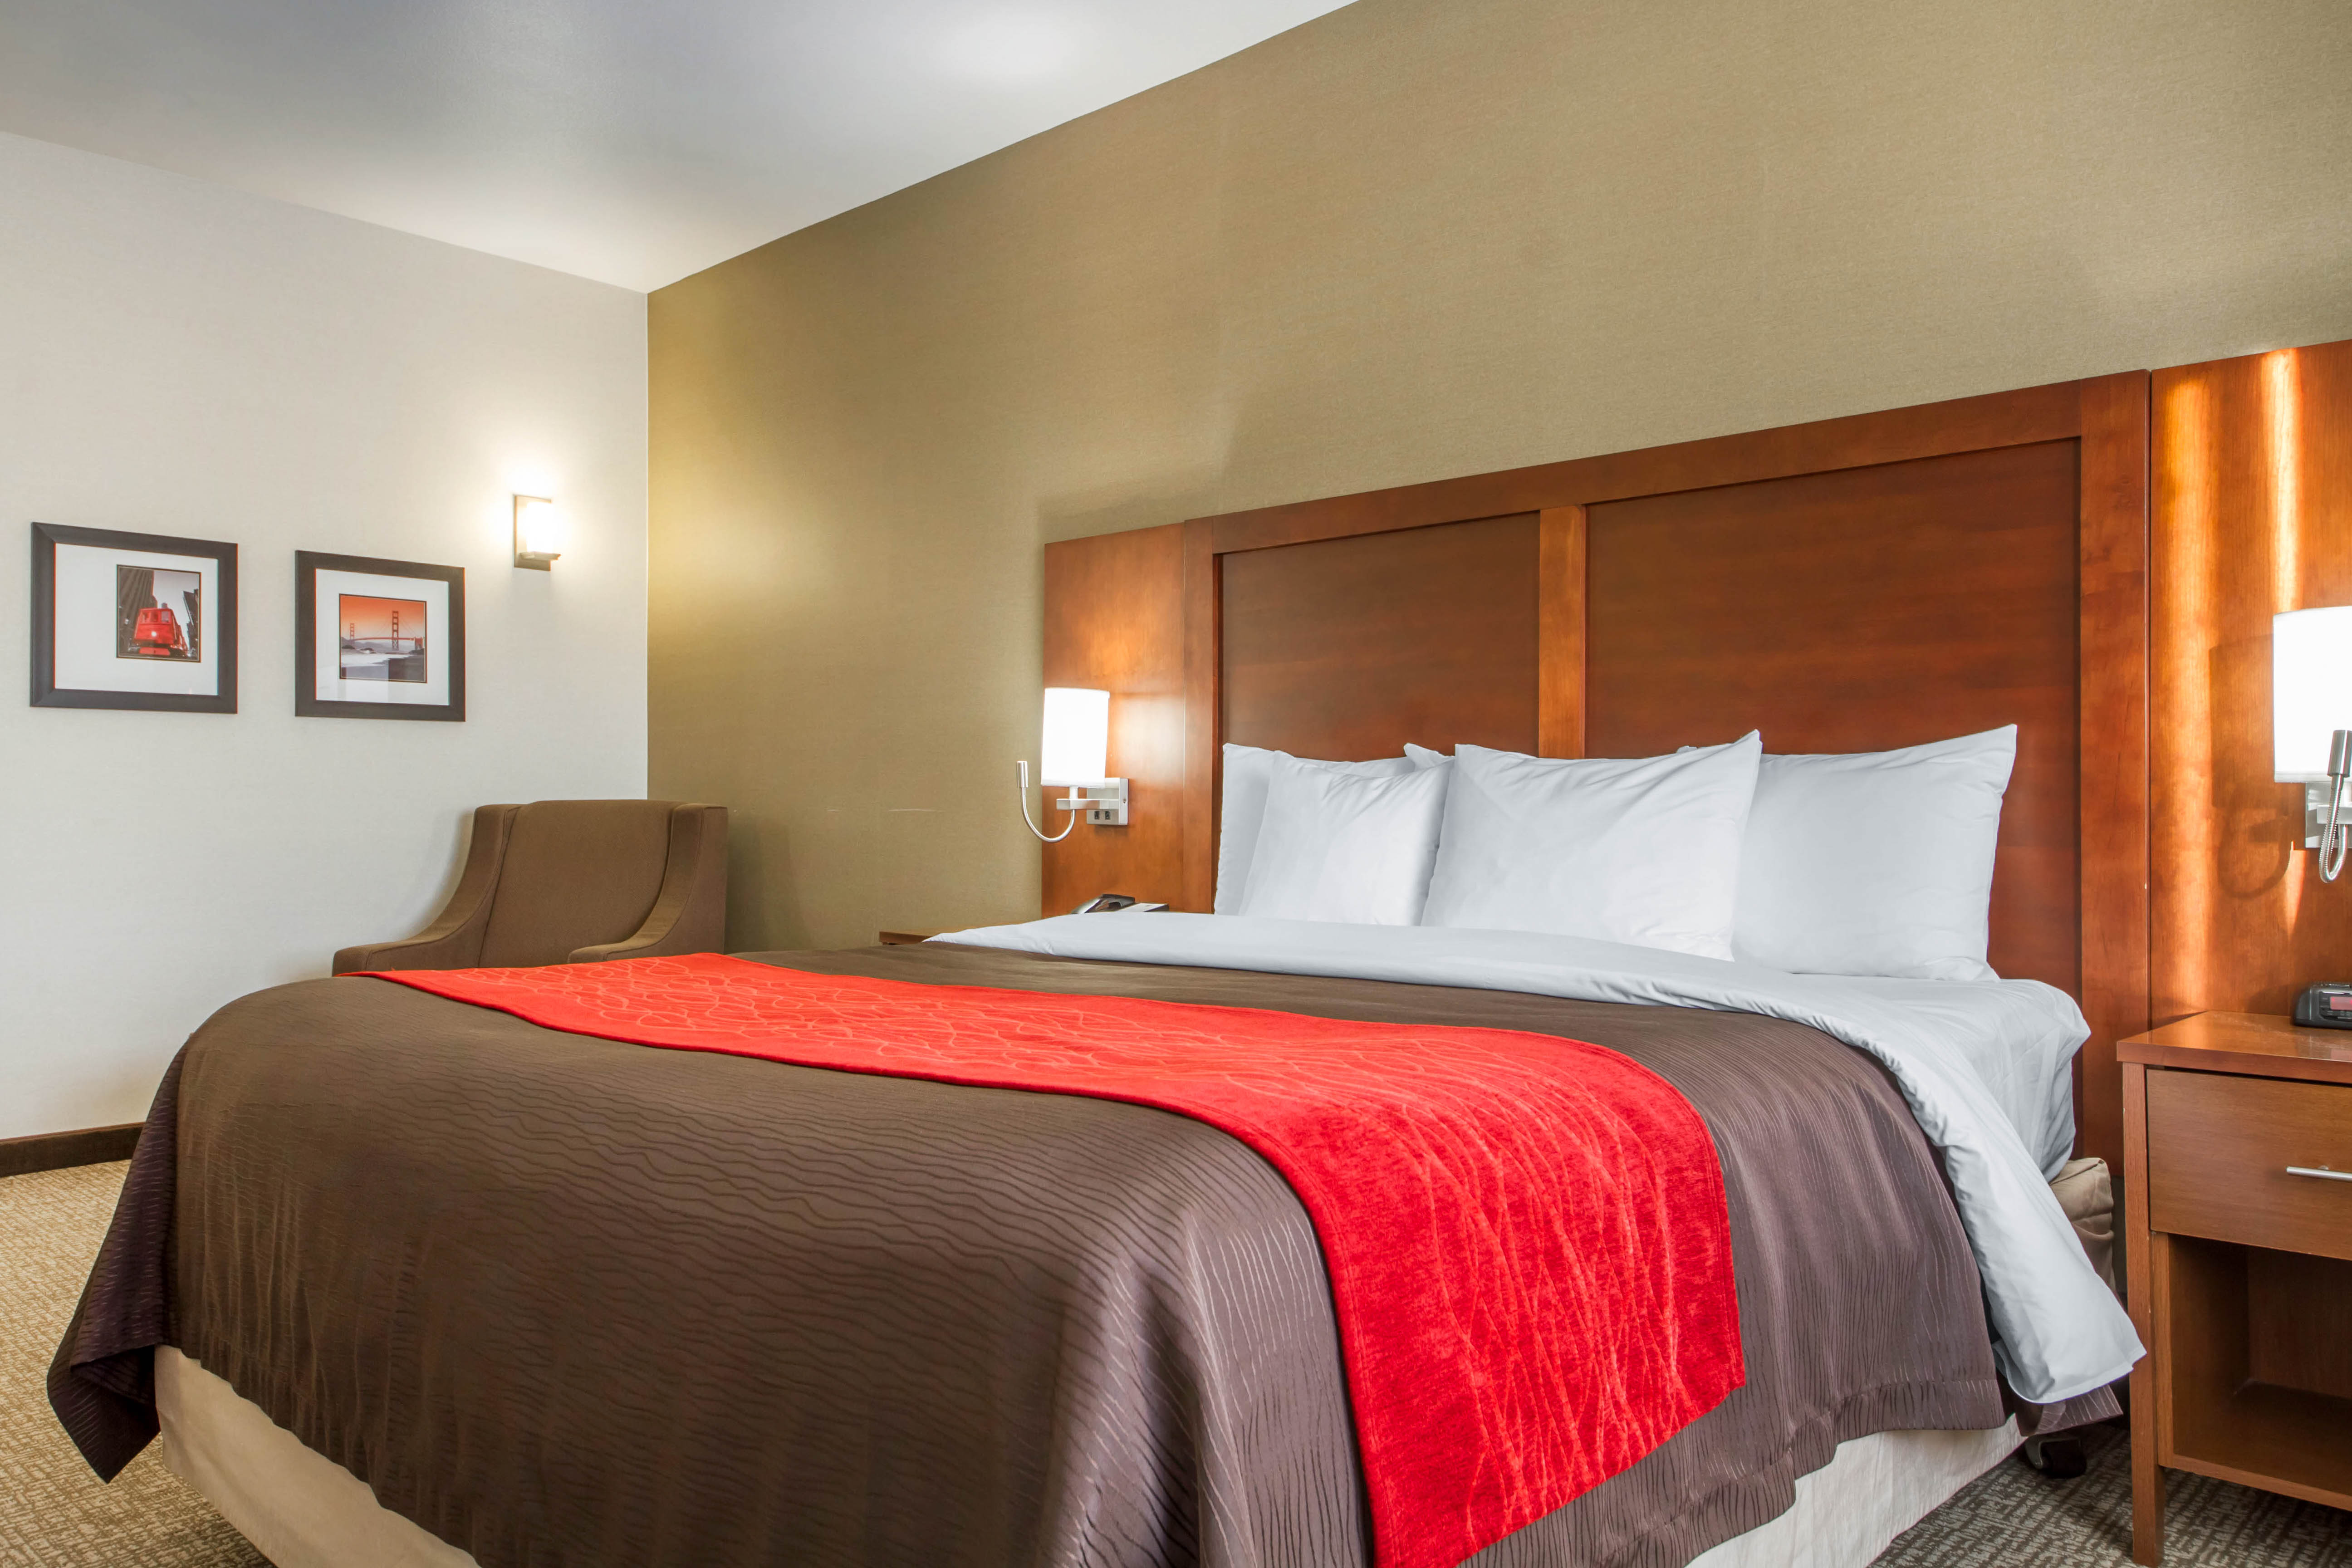 hotel plaza ada bed executive two beds rooms queen twoqueenexec clayton mo louis en st